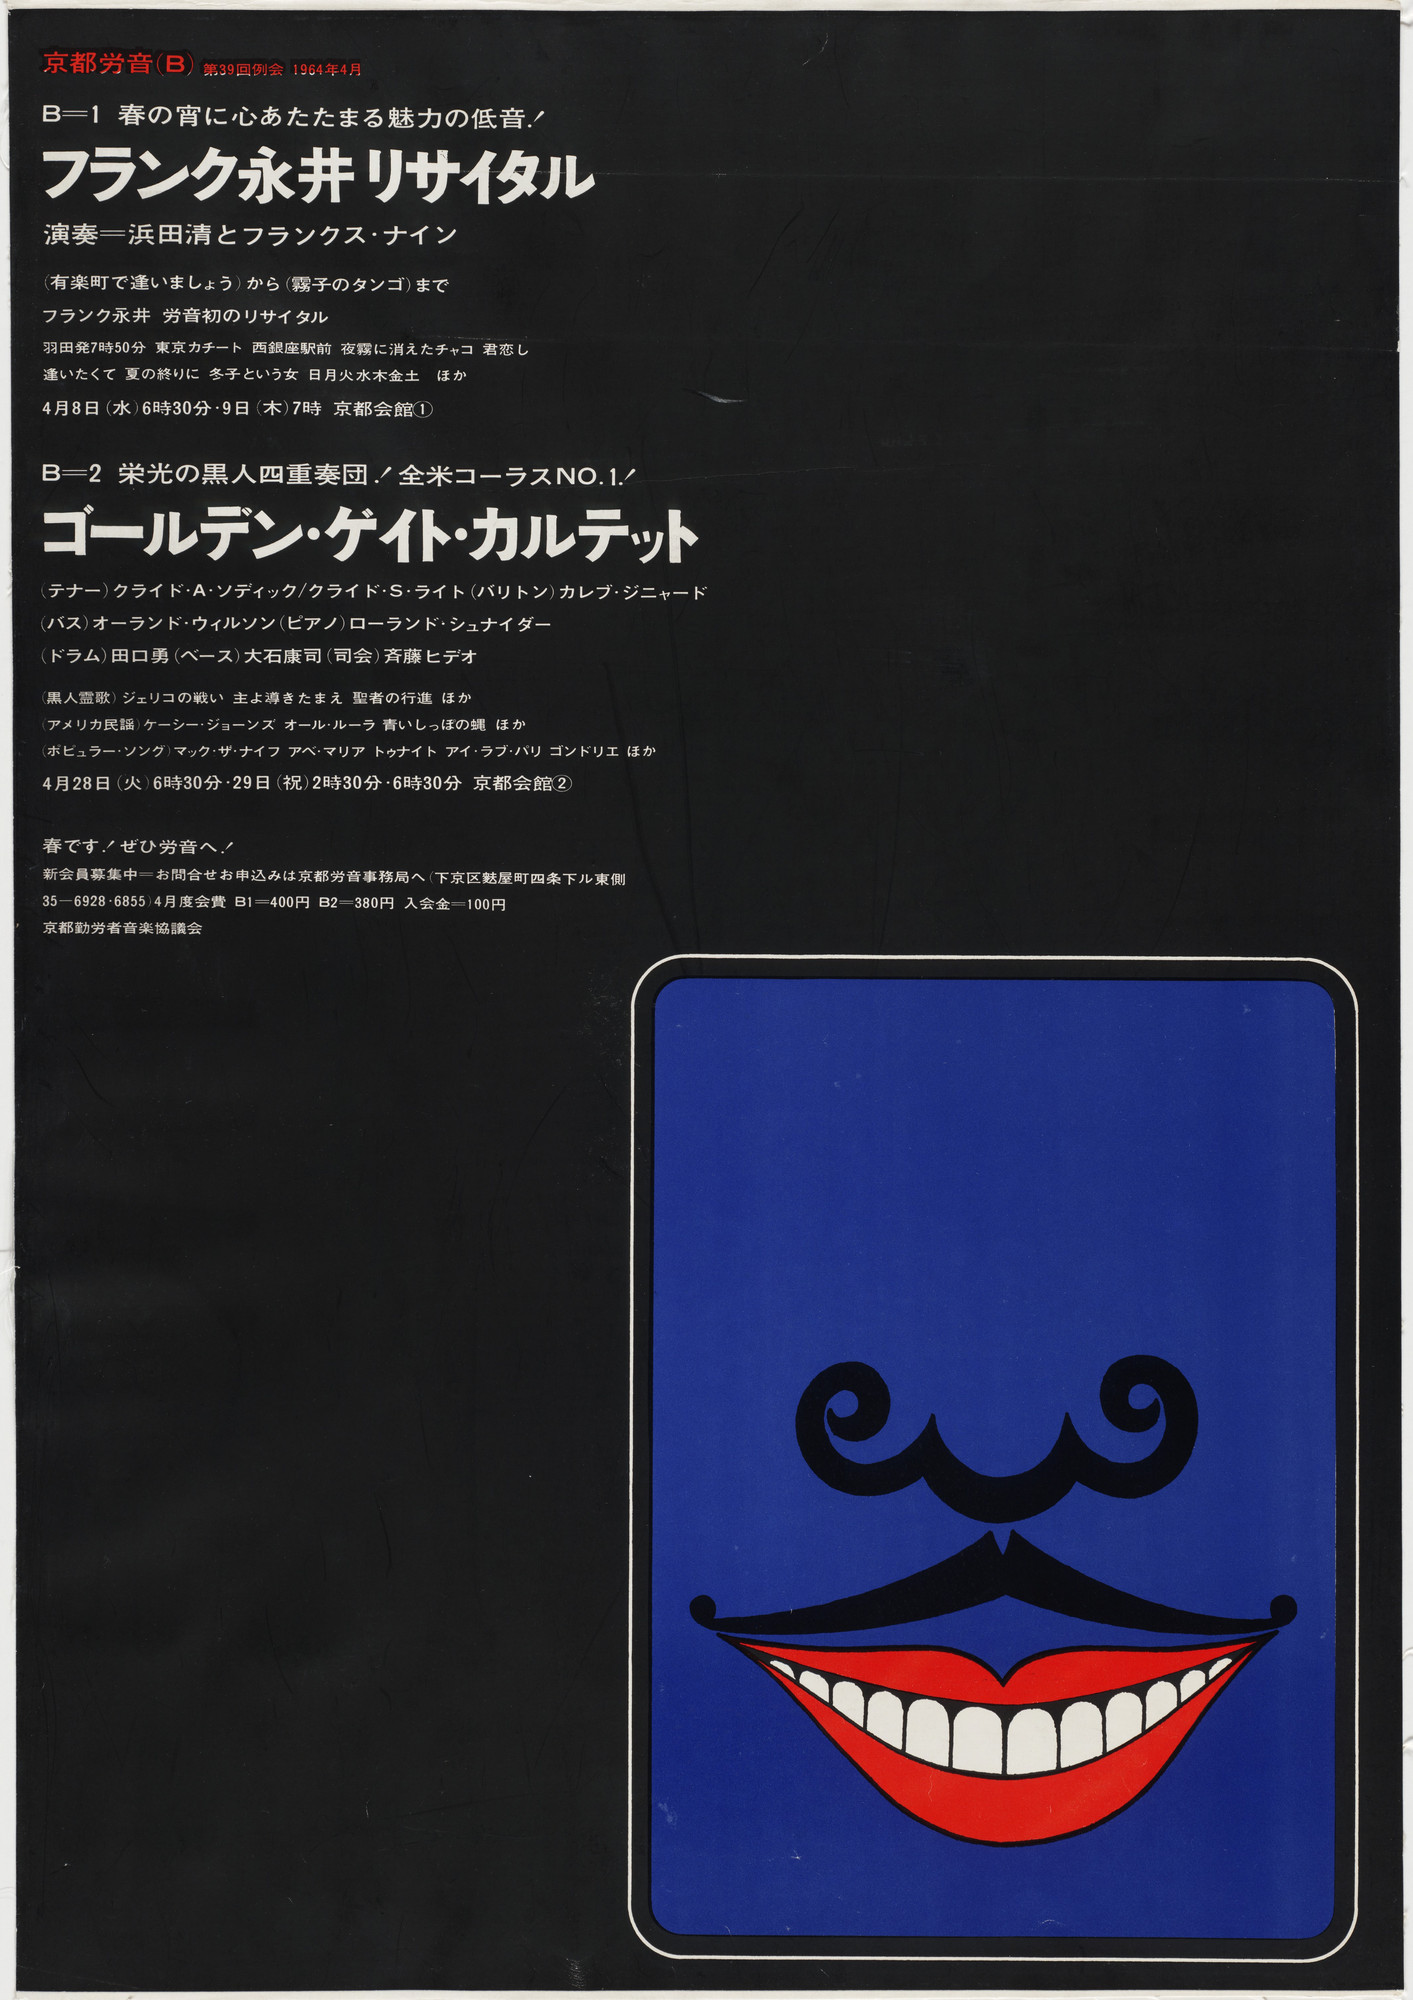 Tadanori Yokoo. Smiling mouth with moustache, Recital at Kyoto Festival Hall. 1964